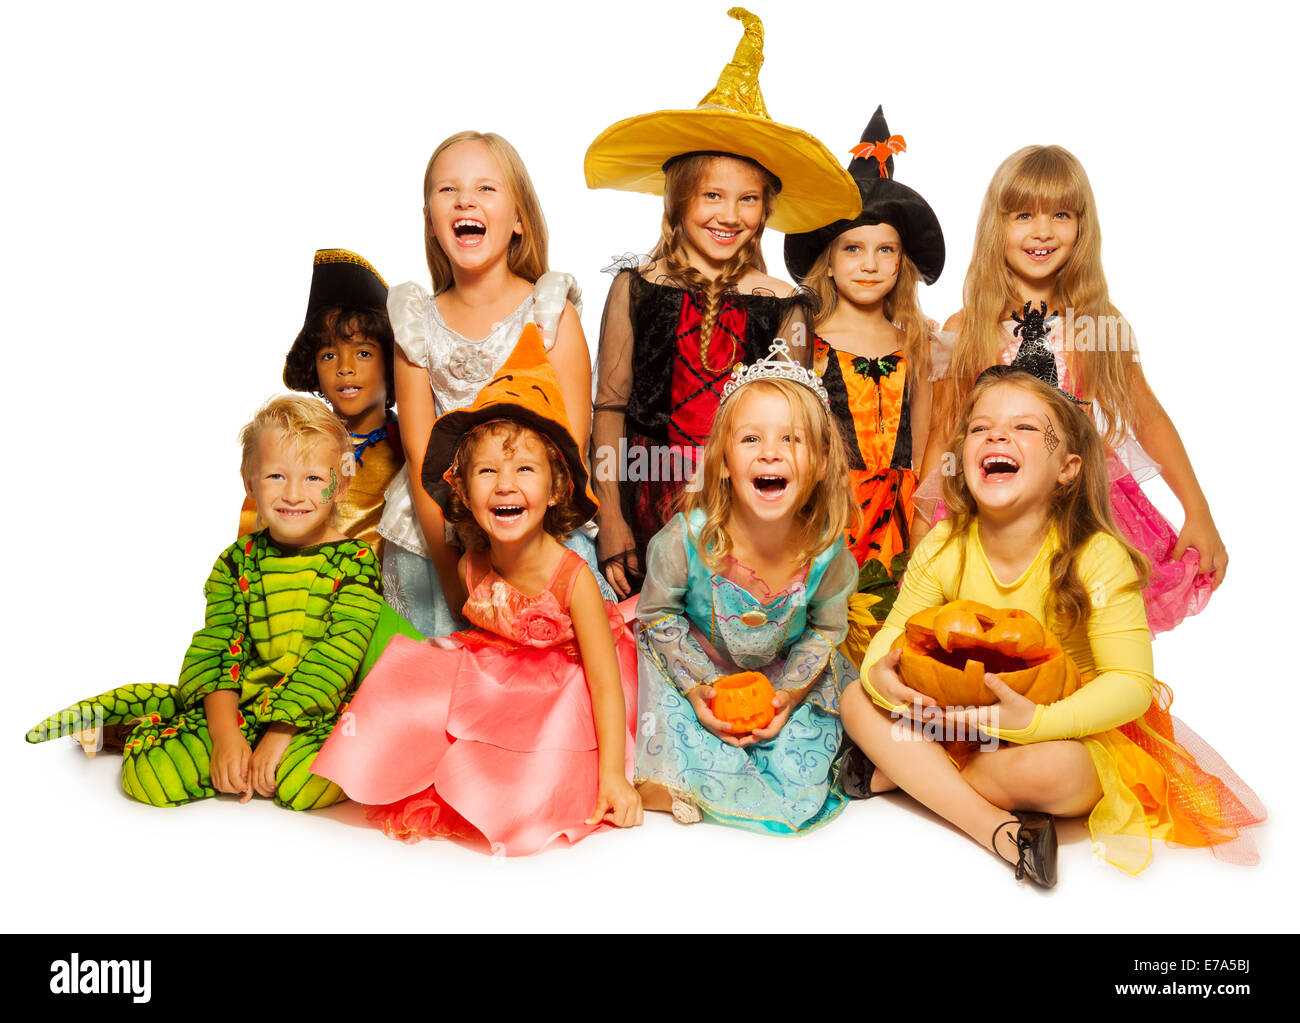 Grosse Gruppe Von Kinder In Halloween Kostumen Stockfoto Bild